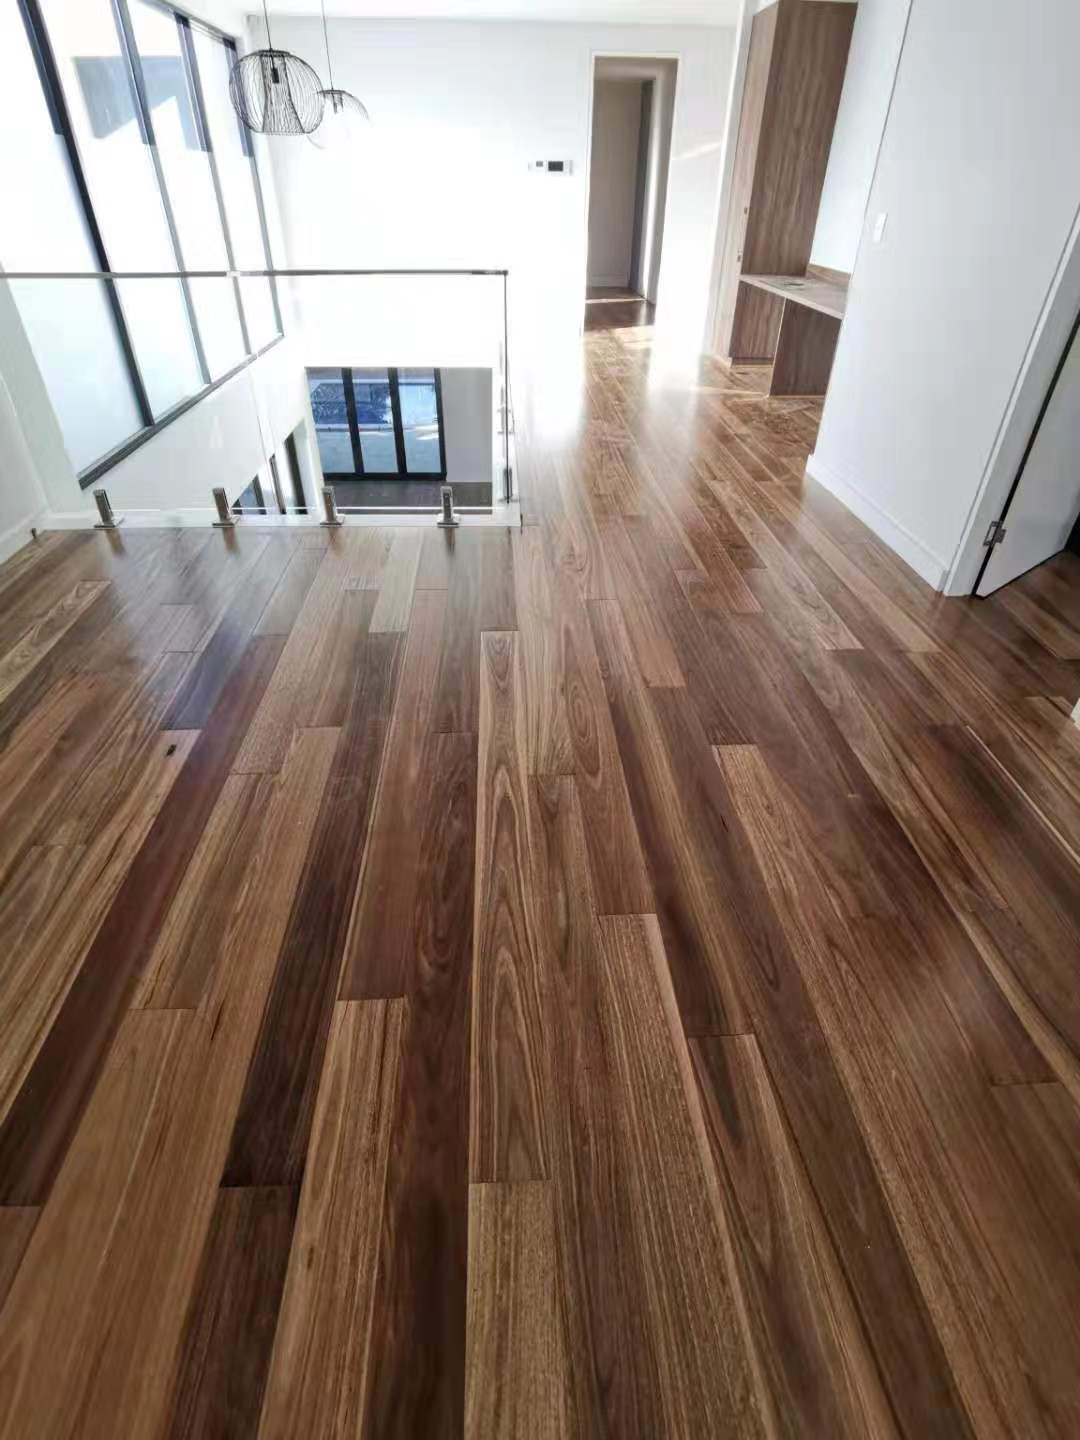 Raw Timber - Spotted Gum - 001